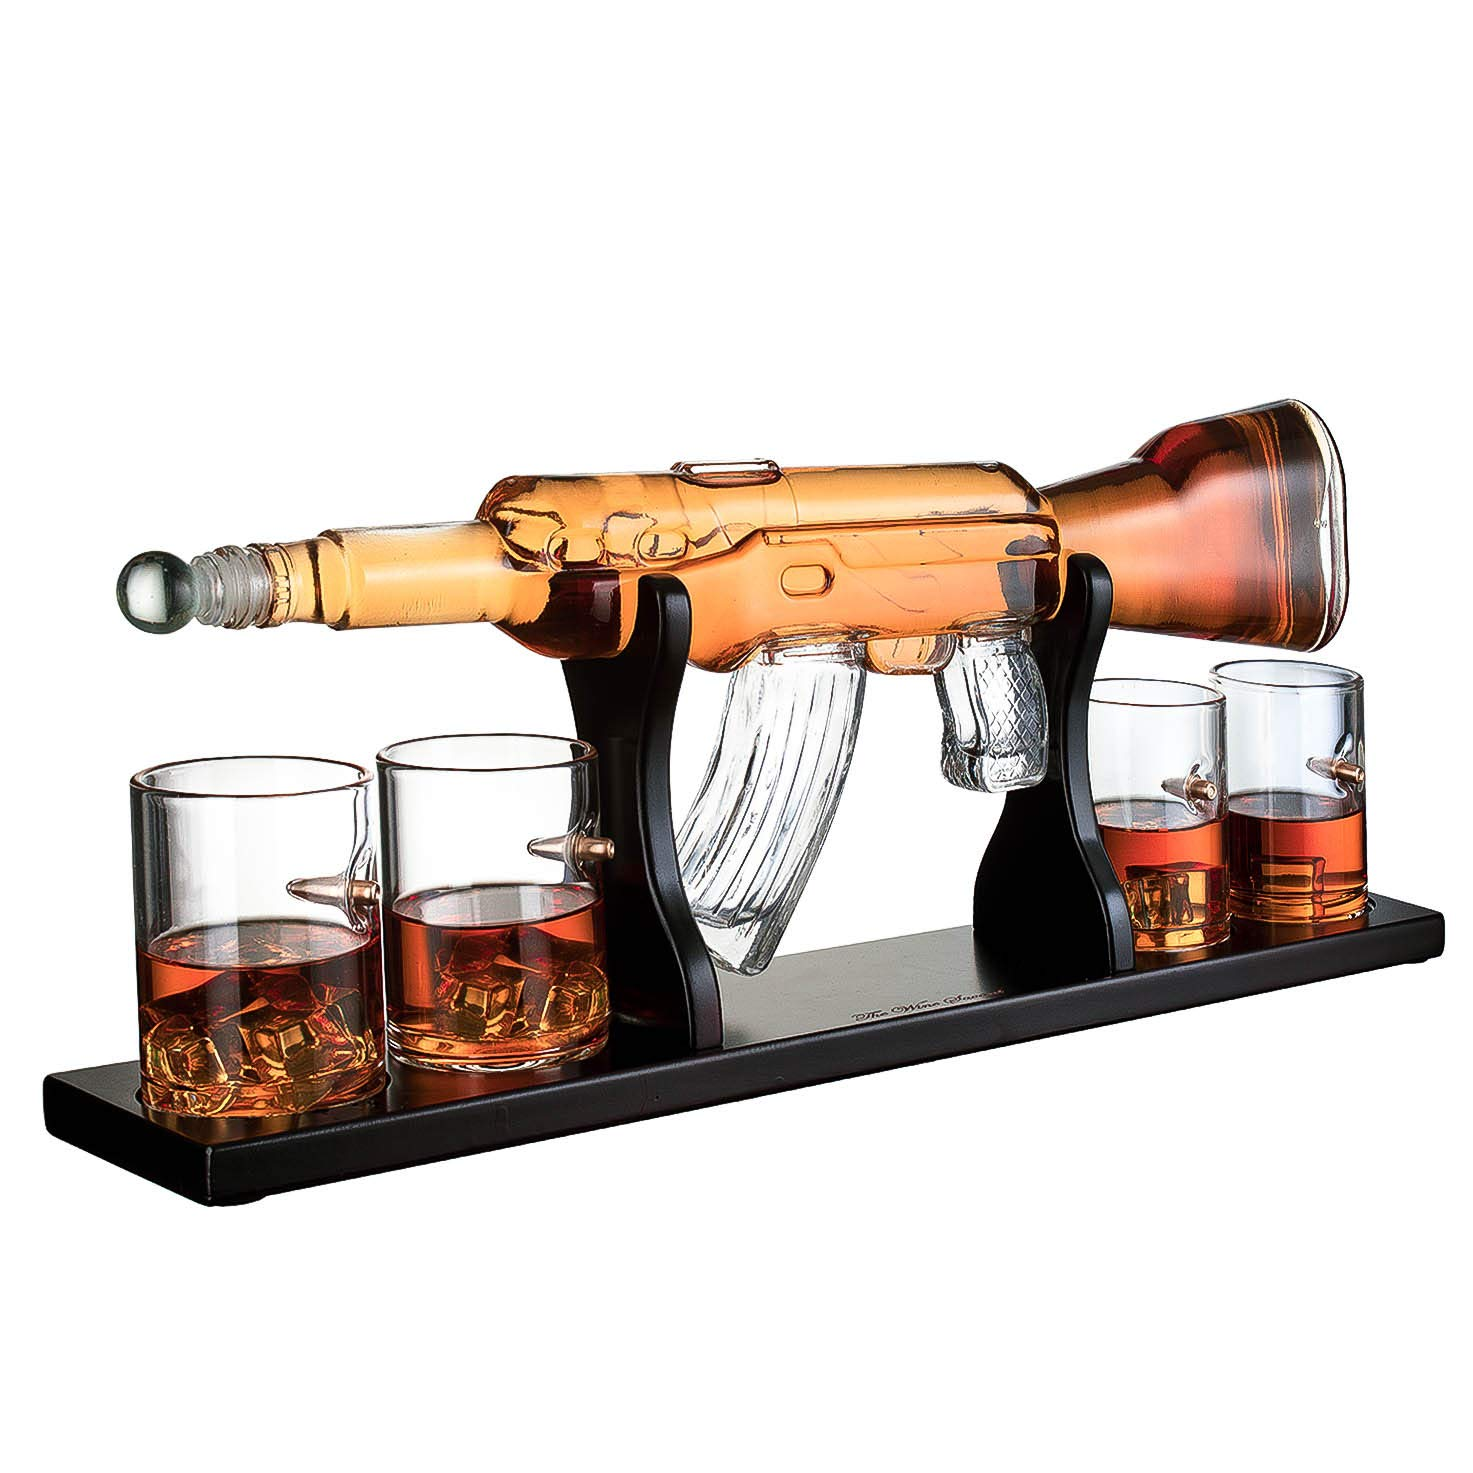 Gun Large Decanter Set Bullet Glasses - Elegant Rifle Gun Whiskey Decanter 22.5'' 1000ml With 4 Bullet Whiskey Glasses and Mohogany Wooden Base By The Wine Savant